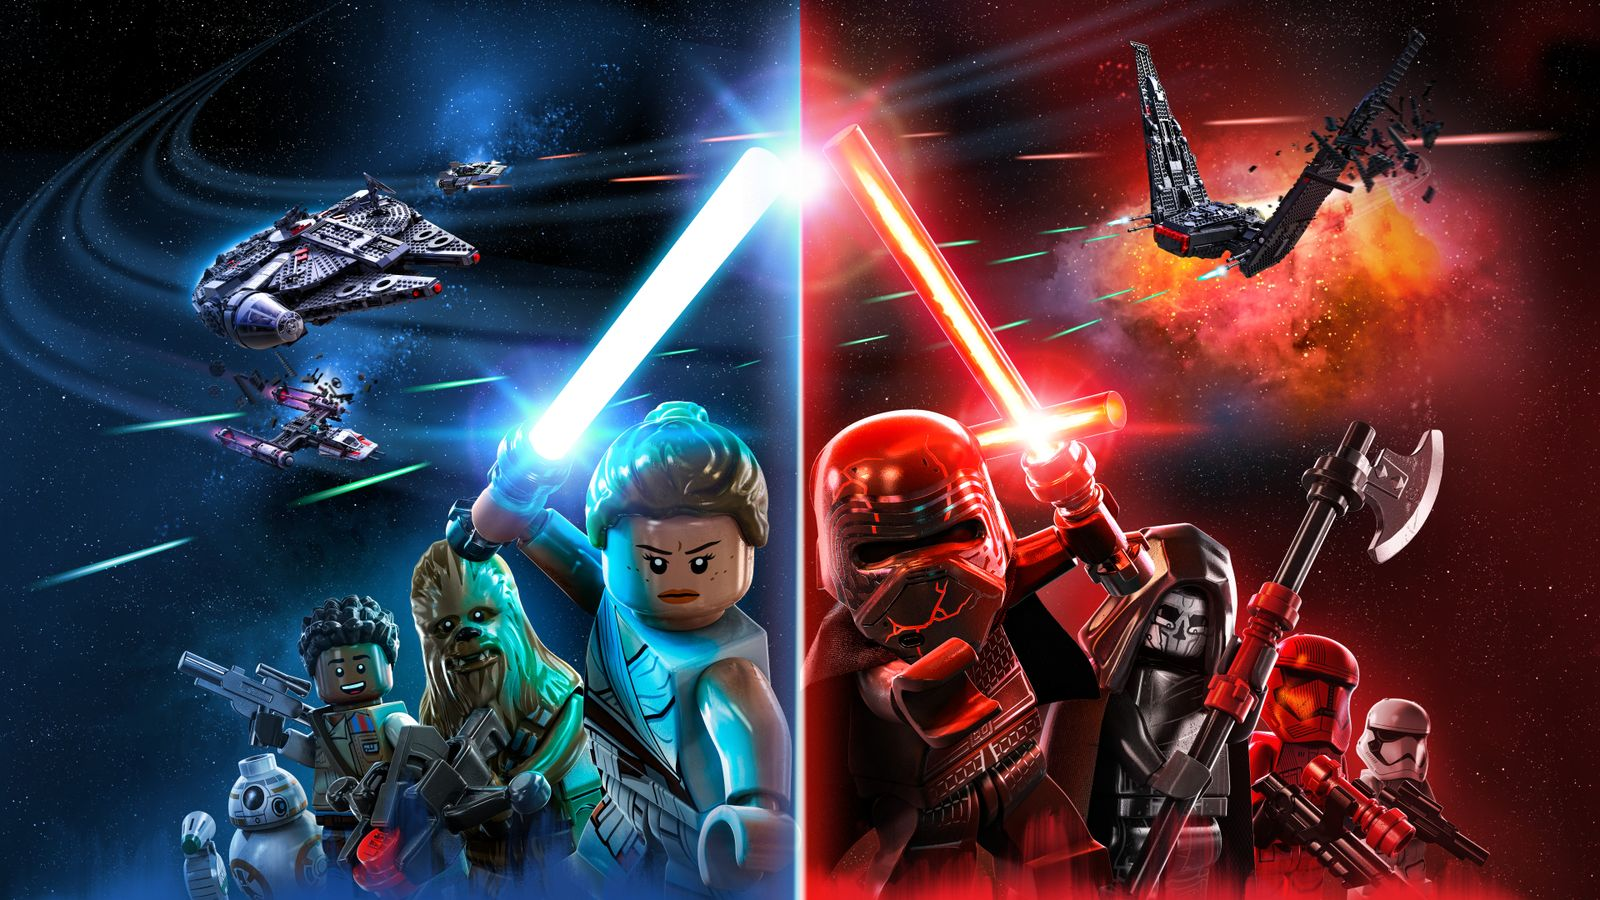 The Lego Star Wars Kids Page Watch Lego Star Wars Videos Characters And More Lego Com Us